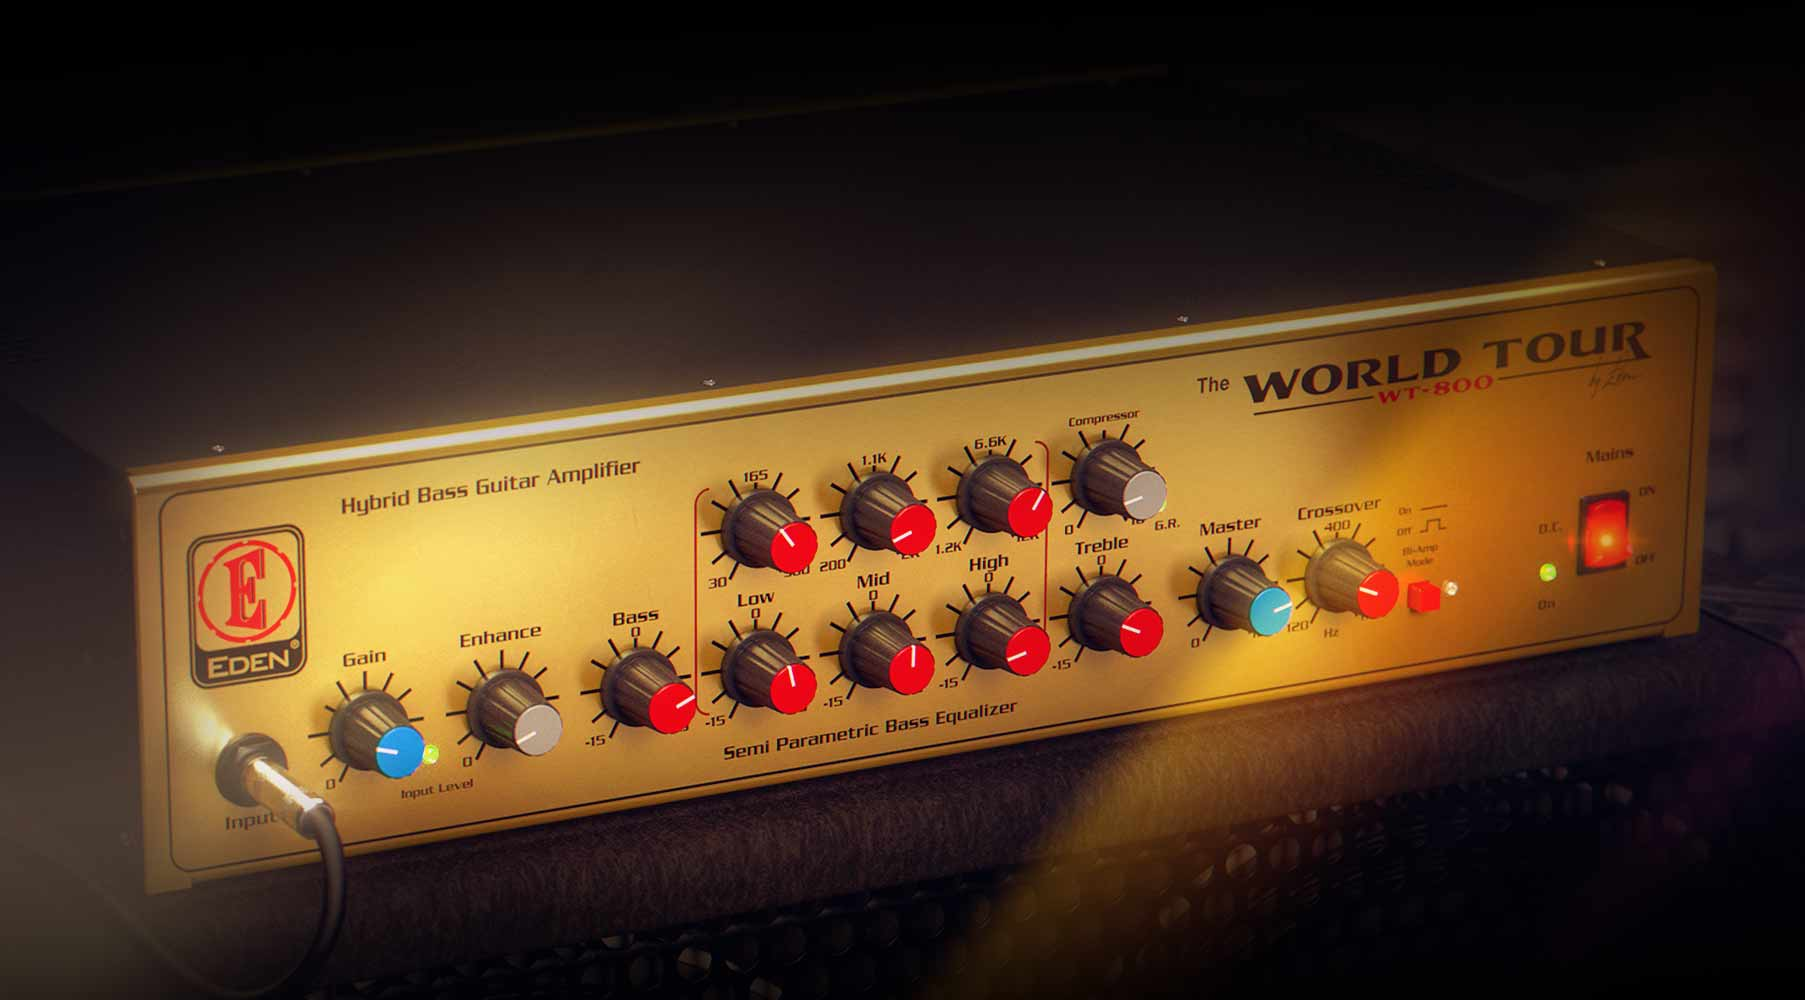 Eden WT800 Bass Amplifier